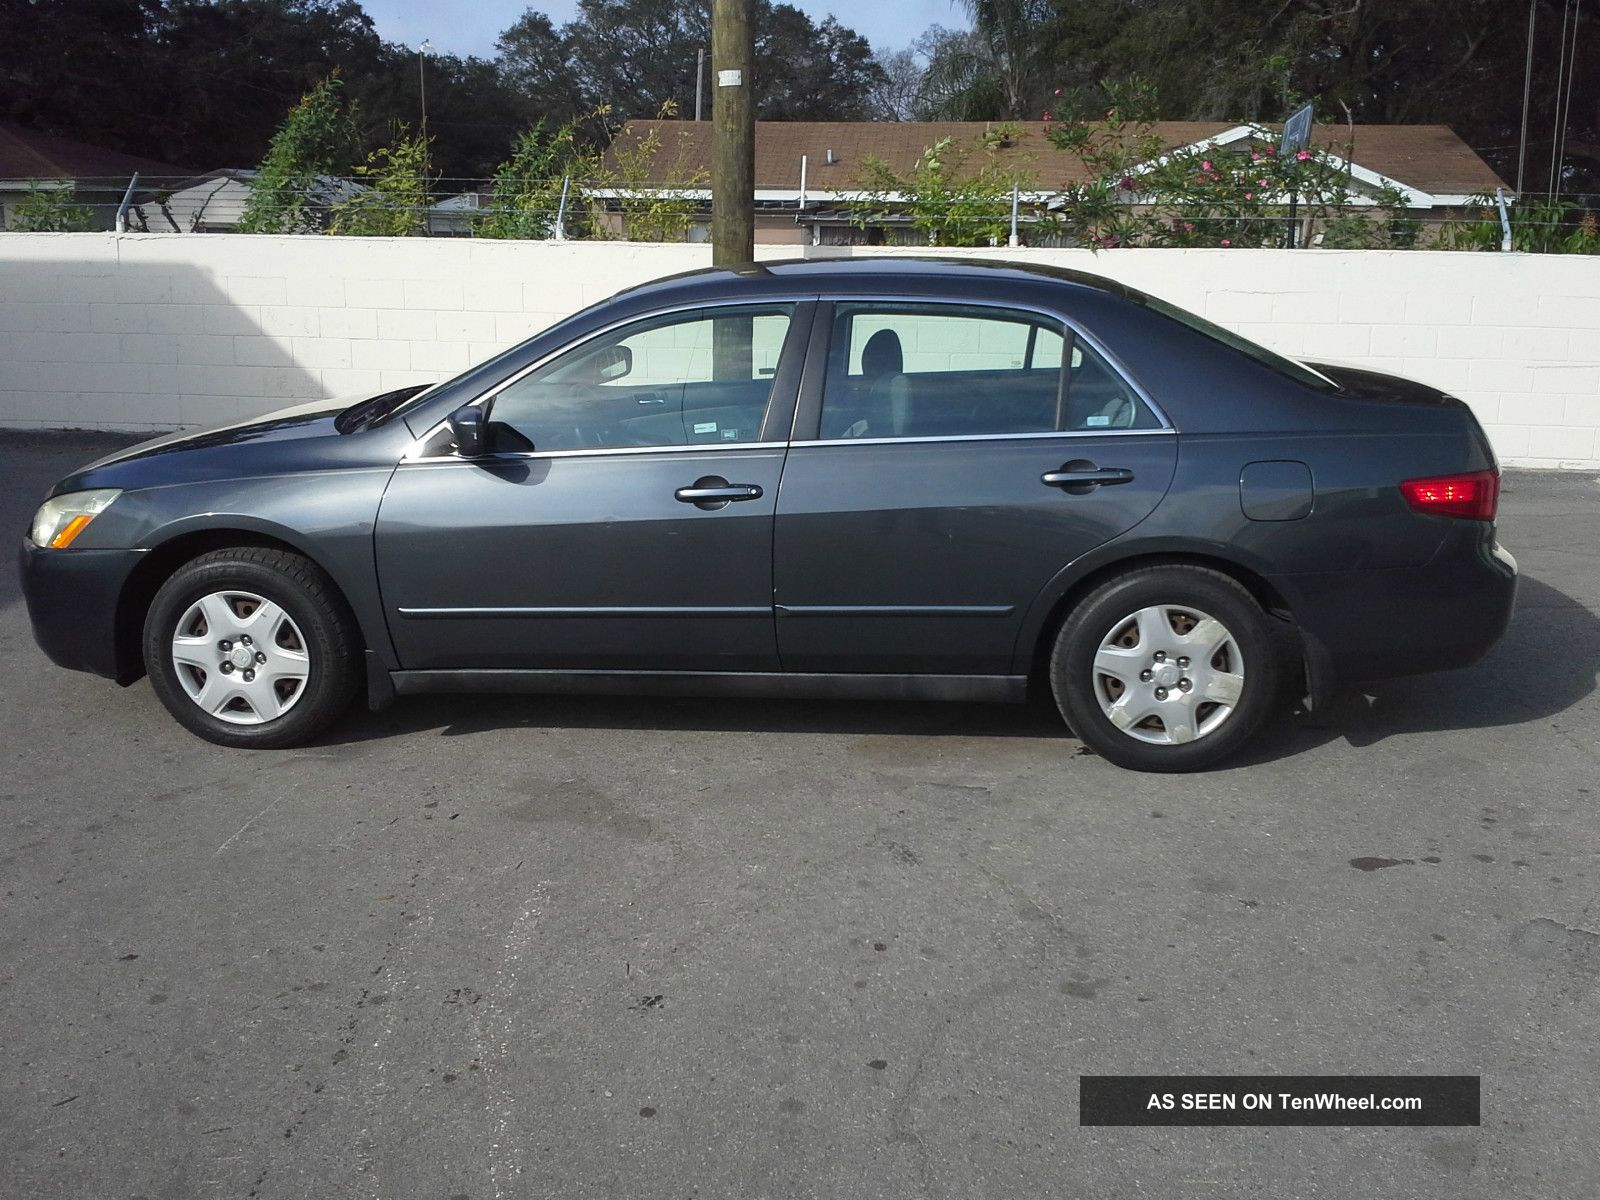 2005 honda accord lx sedan 4 door 2 4l for 09 2 door honda accord